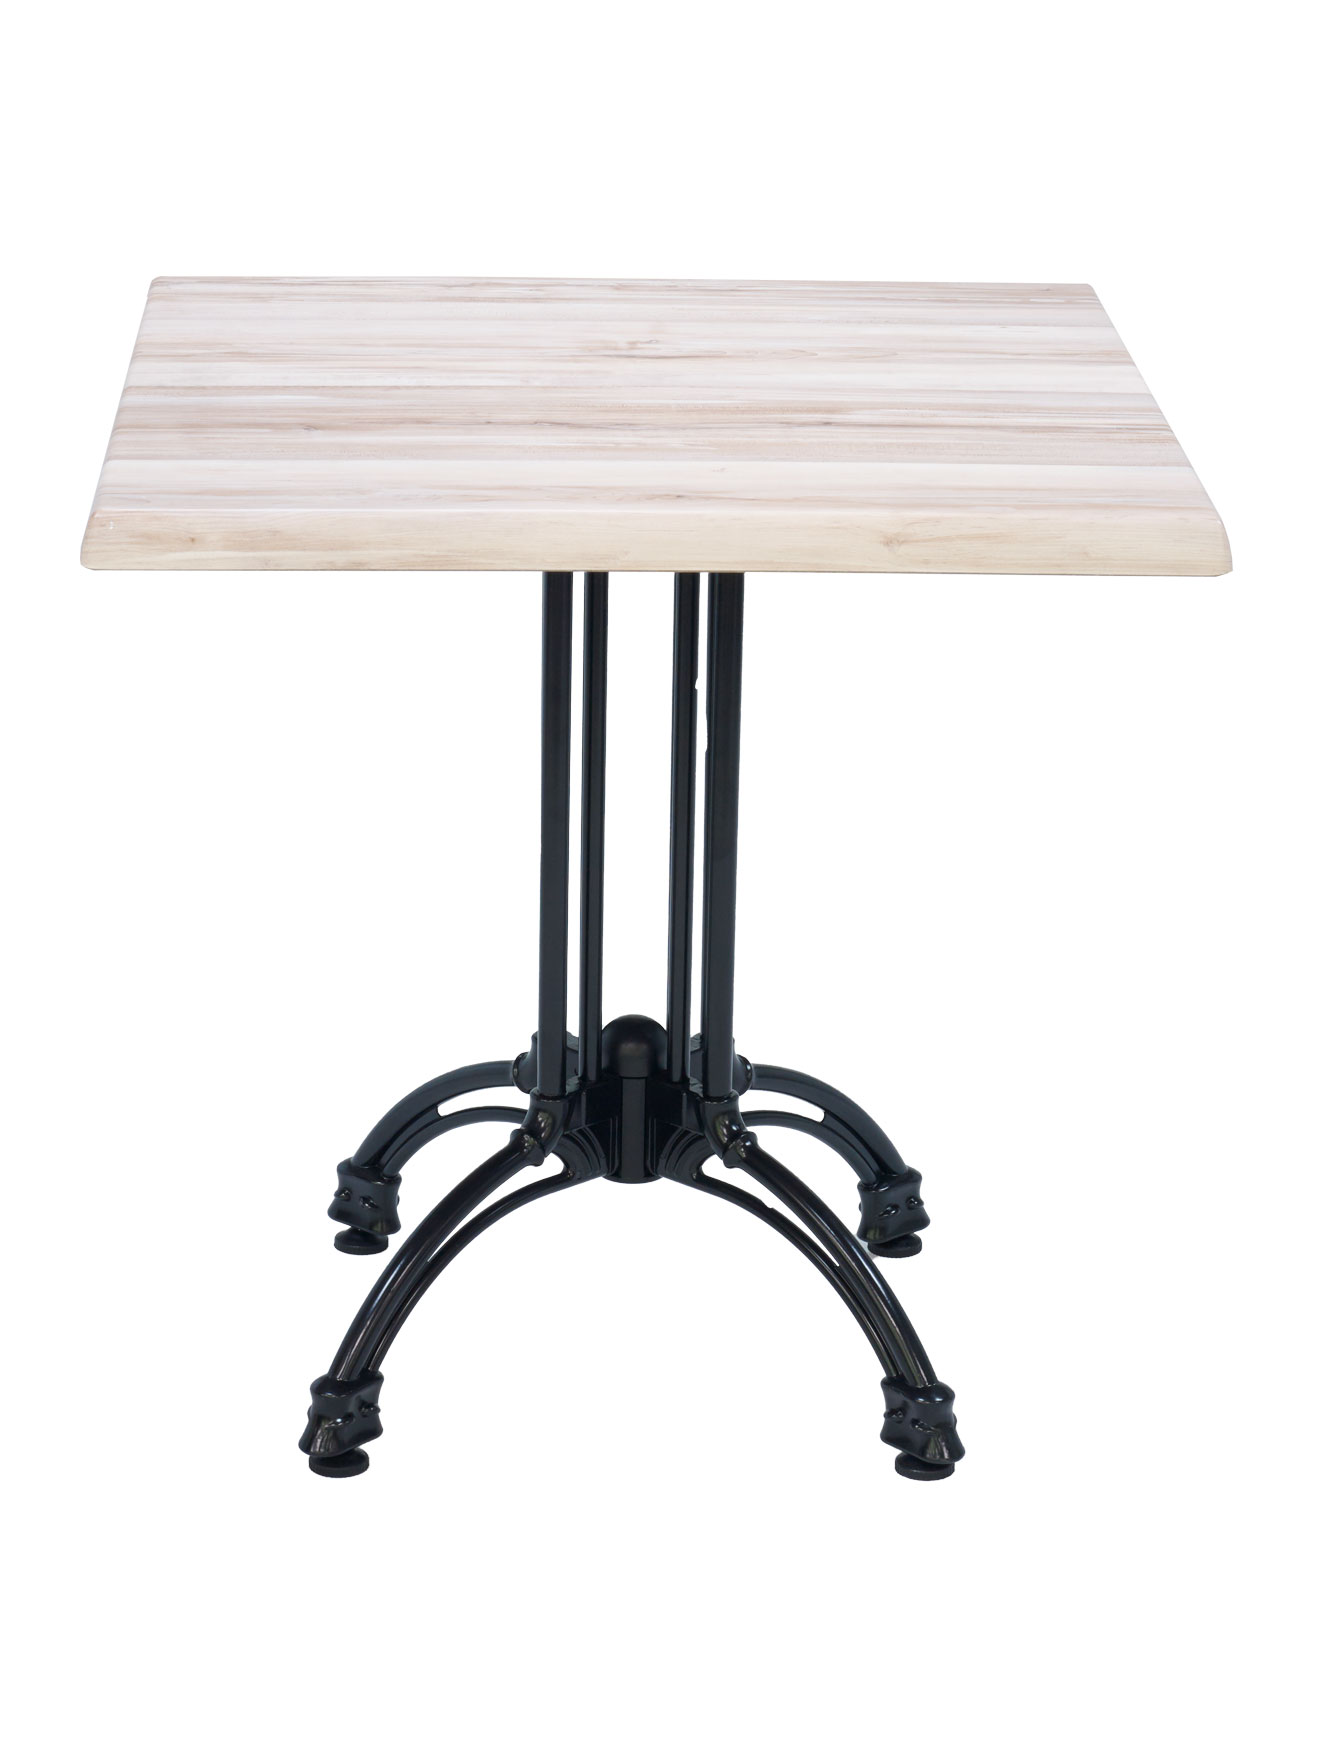 ARIA TABLE TOPS RC1087-RC1097 $69.00-$199.00